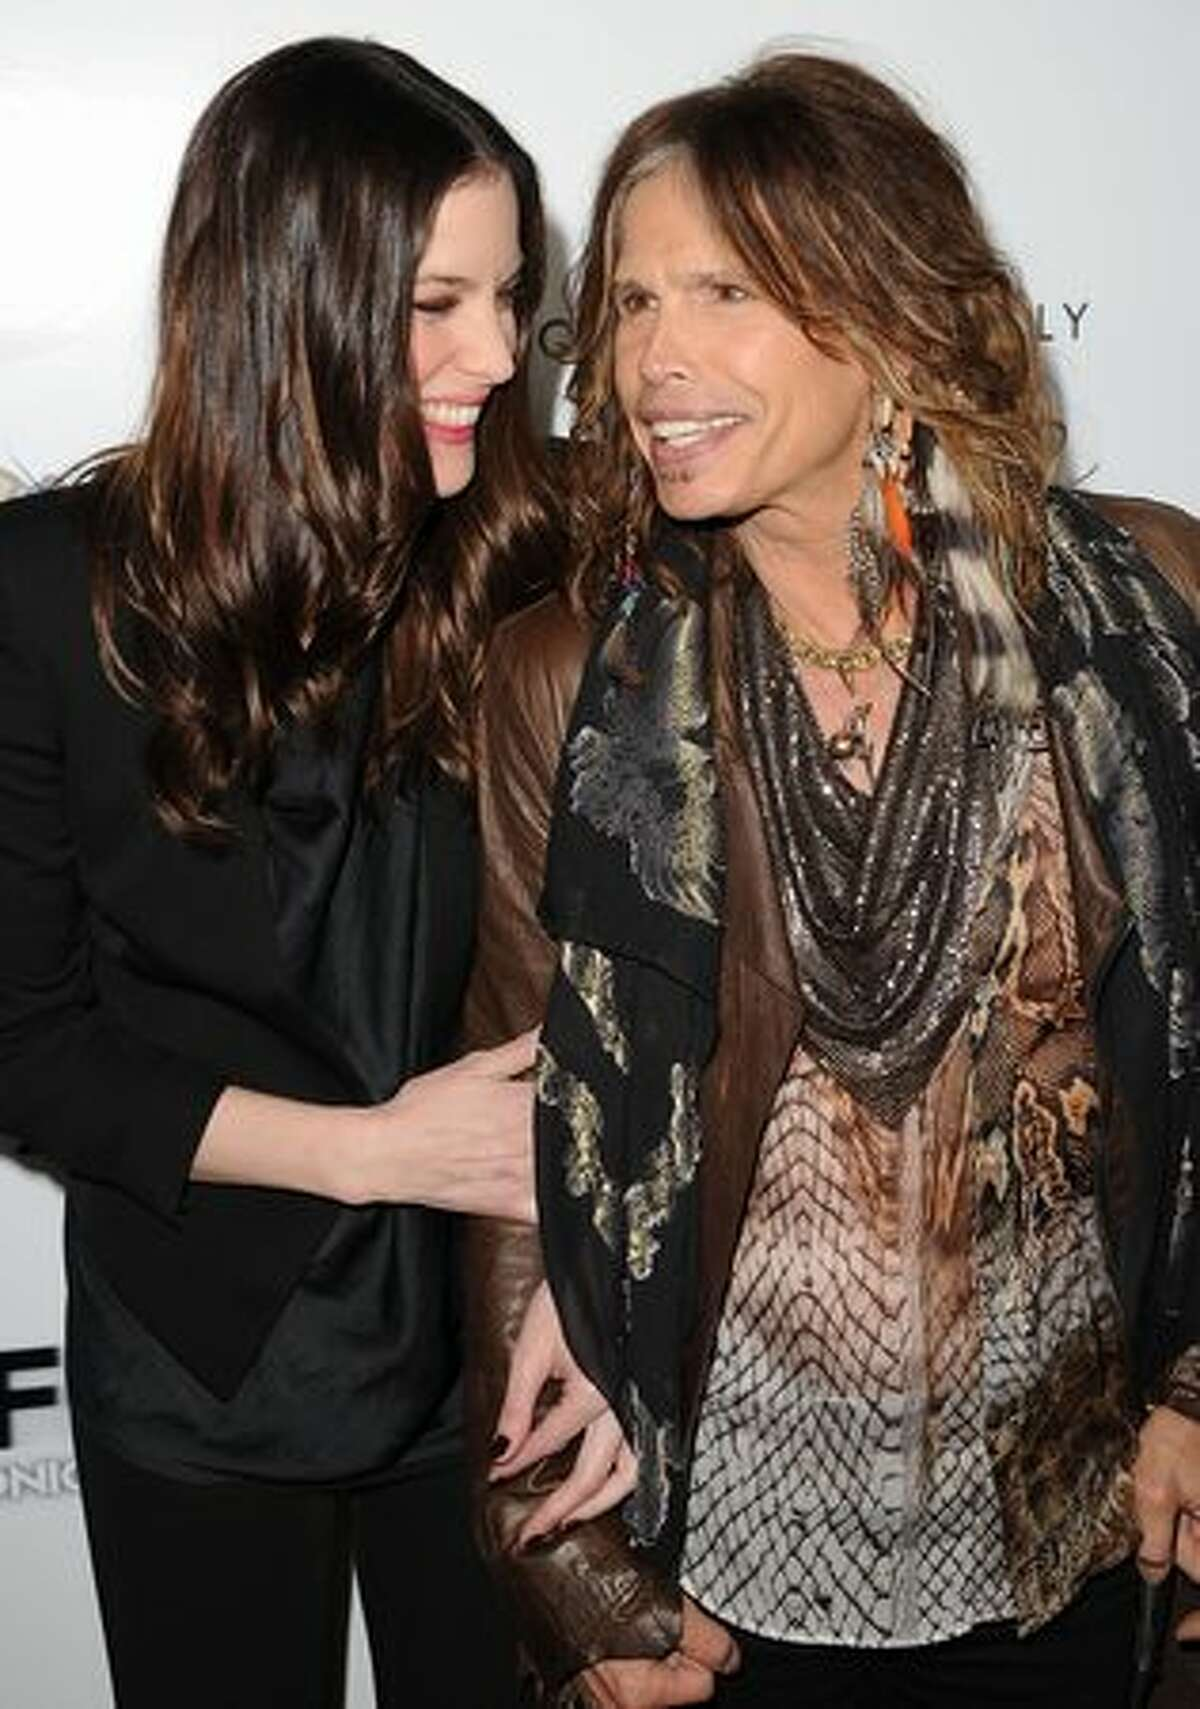 Actress Liv Tyler and singer Steven Tyler arrive at the premiere of IFC Midnight's 'Super' at the Egyptian Theatre in Hollywood, California.